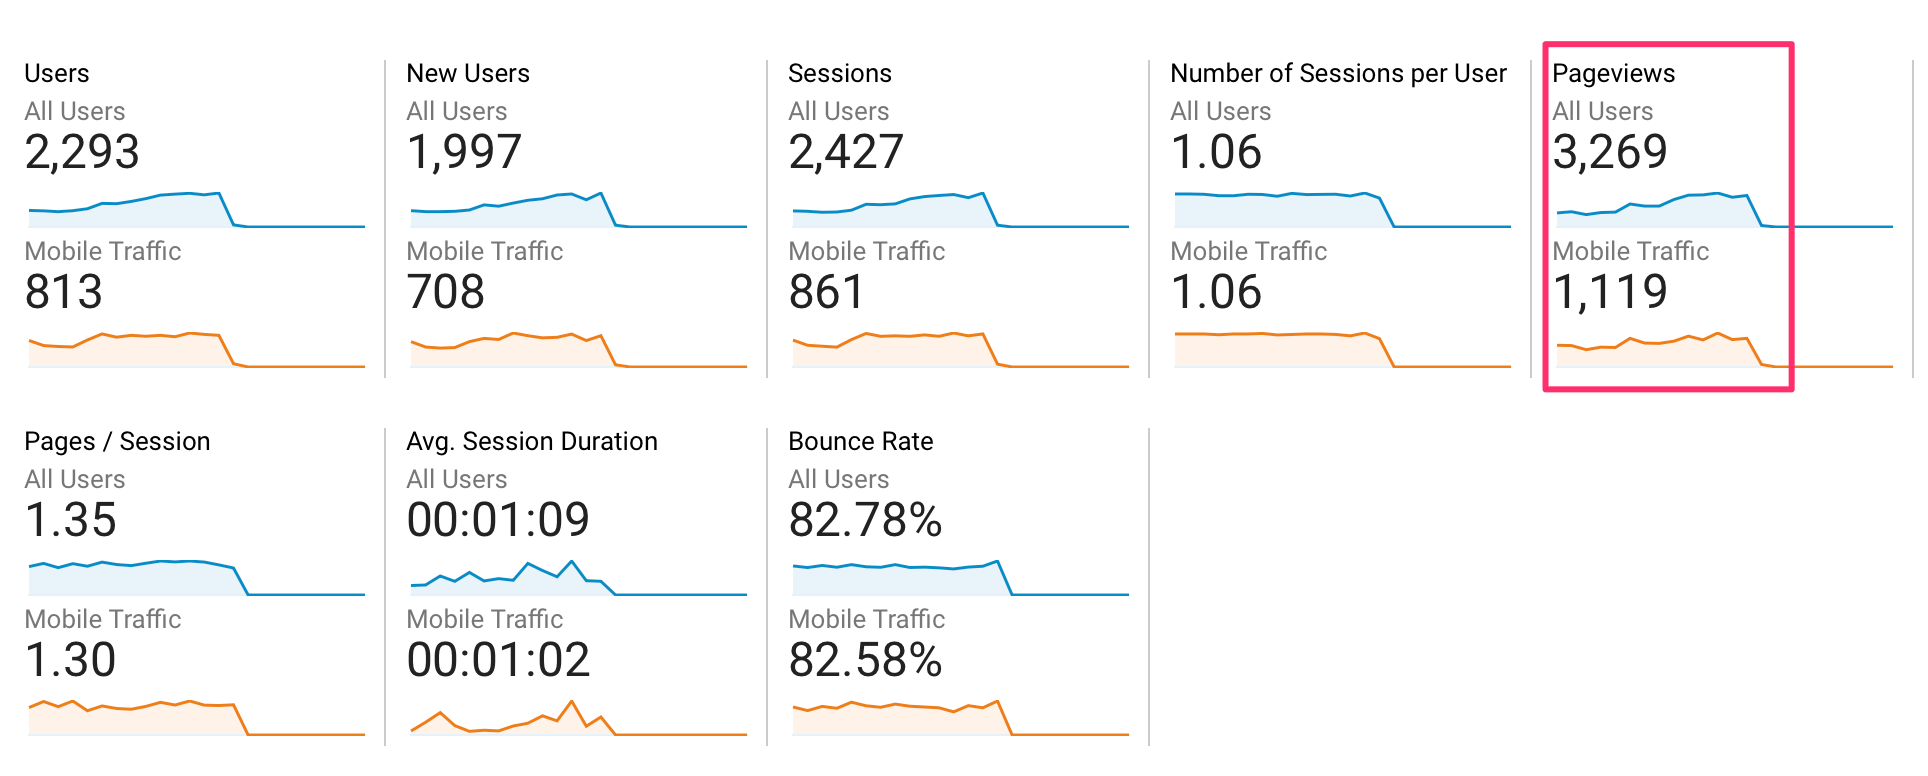 Pageviews from Mobile Traffic